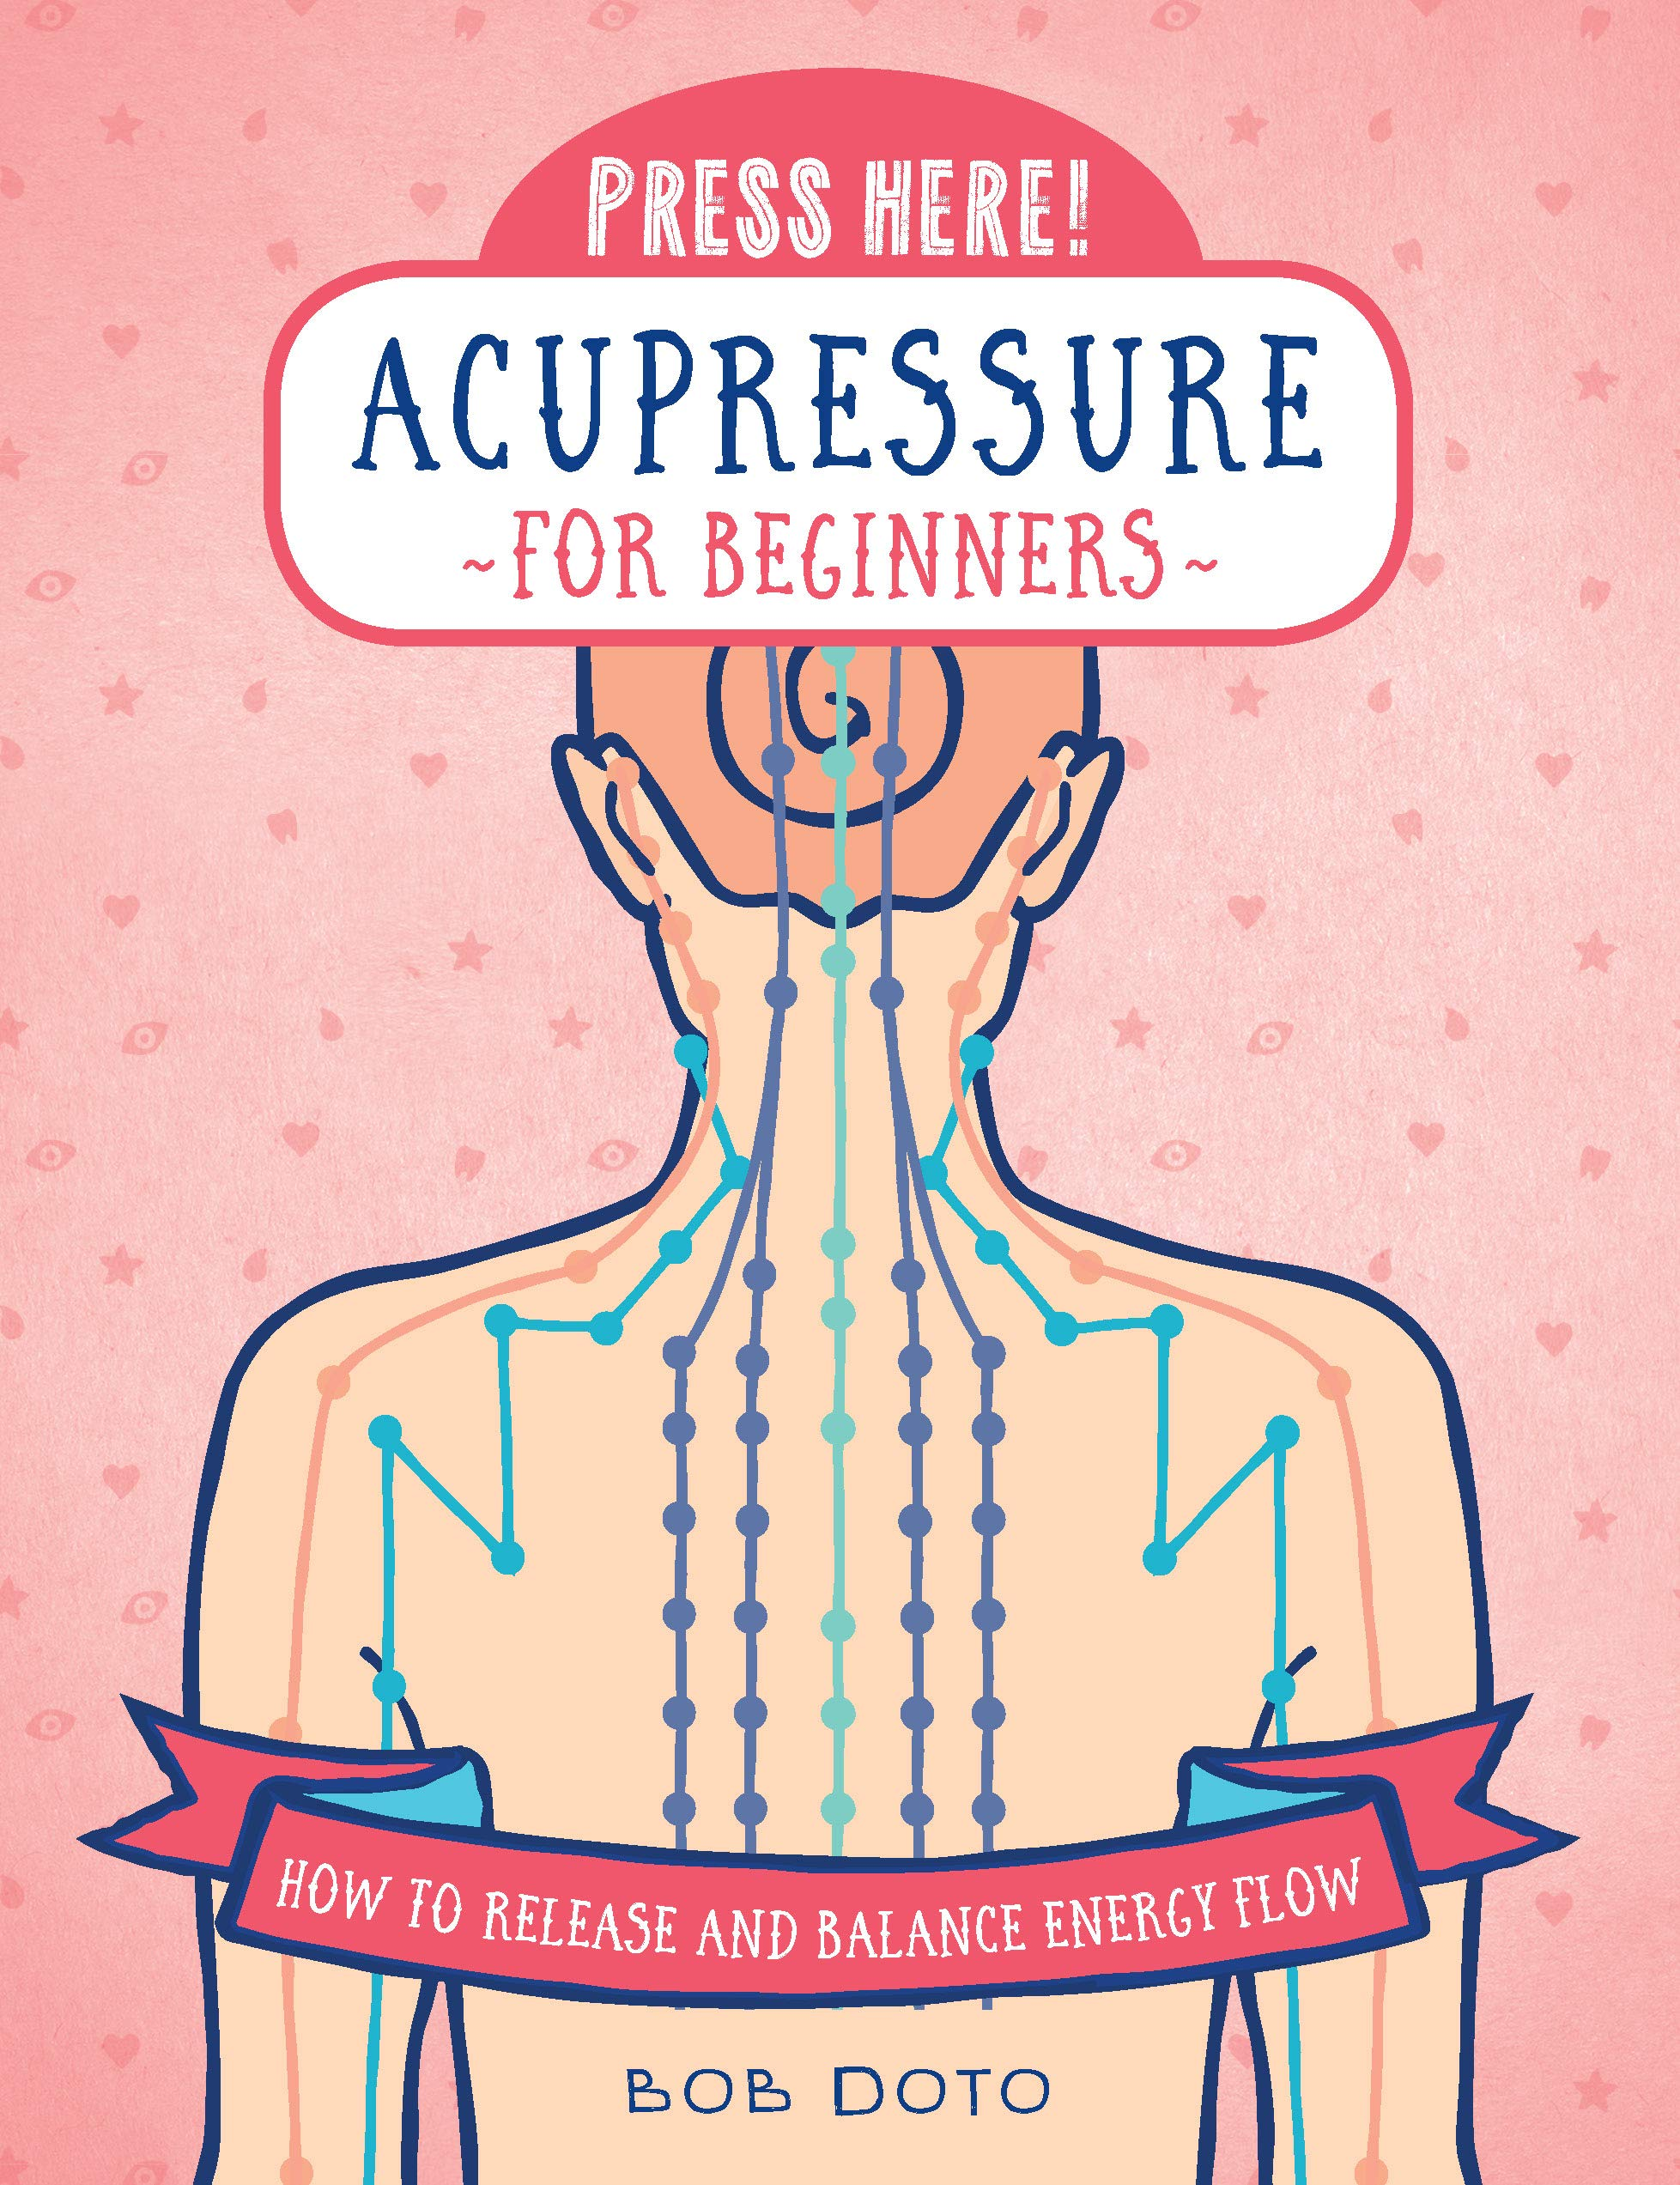 Press Here! Acupressure for Beginners: How to Release and Balance